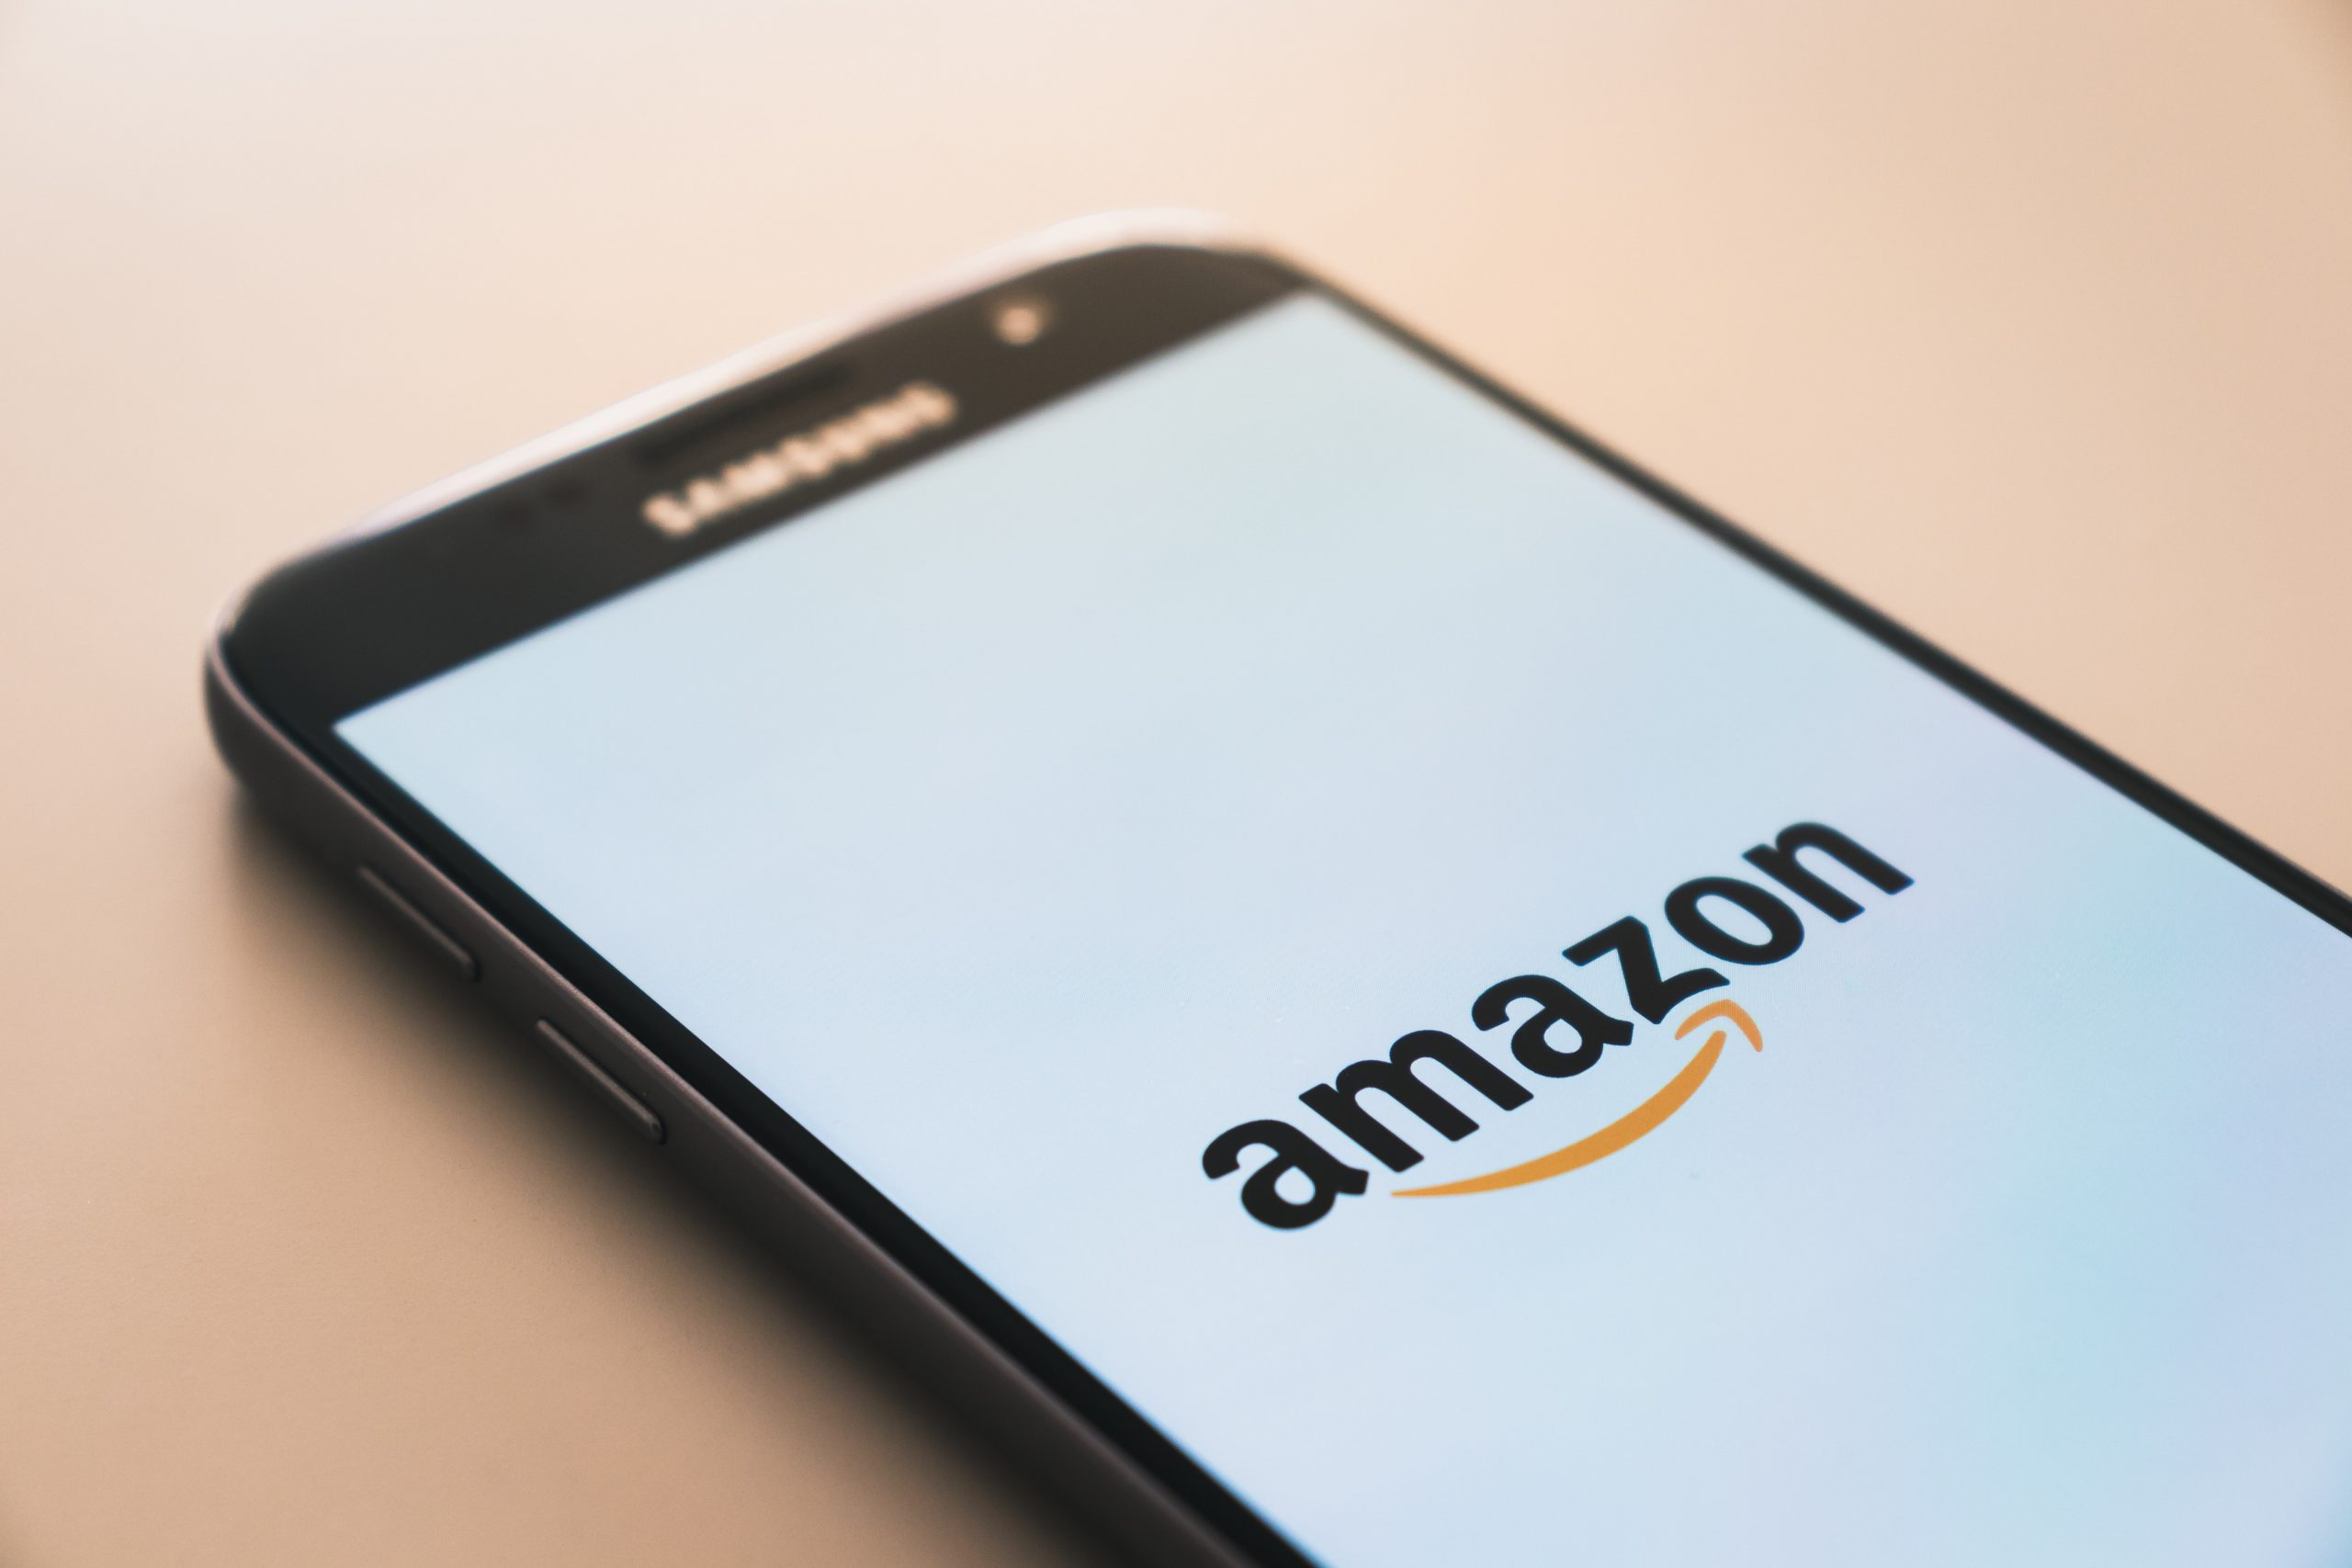 Amazons Latest Announcements are Turning Heads